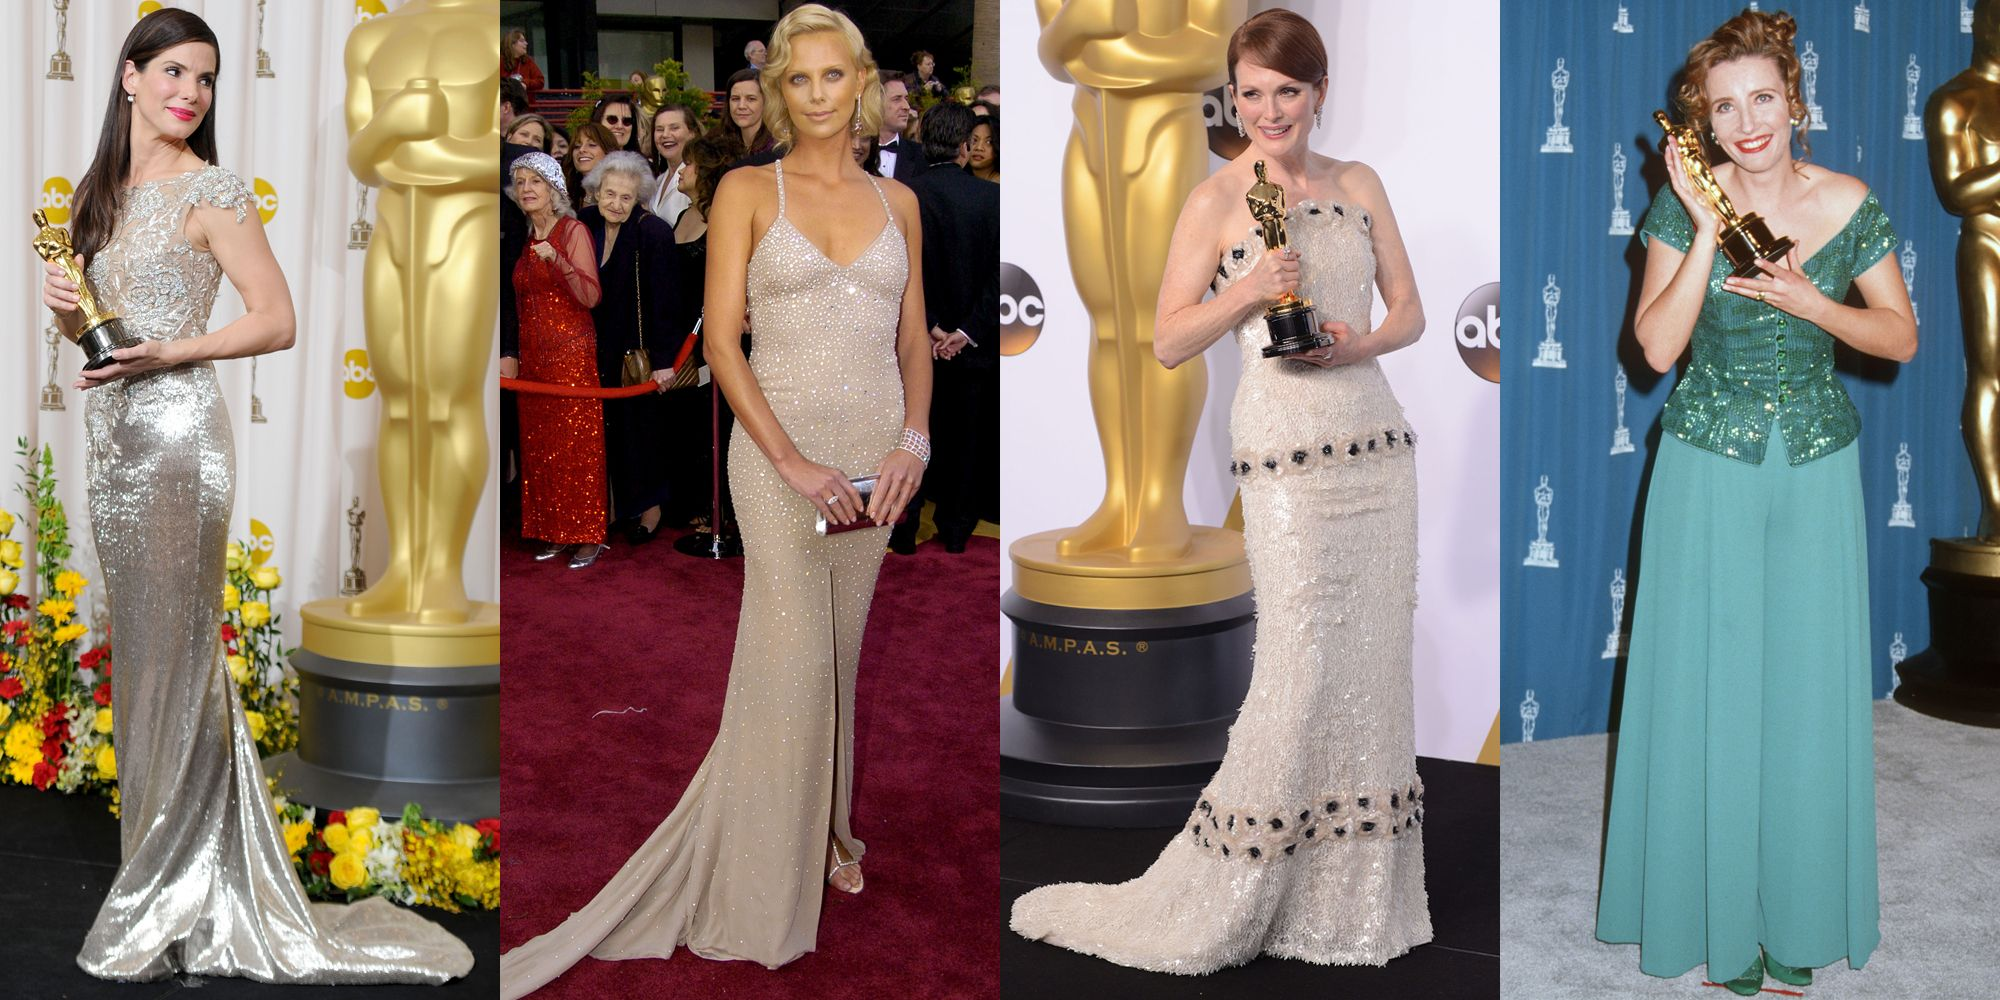 "<p><em>Sandra Bullock in Marchesa (2010), Charlize Theron in Gucci (2004), Julianne Moore in Chanel (2015), Emma Thompson in Caroline Charles (1993)</em></p><p>If there's any time to wear a ""Look at me!""  sparkle bomb of a dress, it's the night you take home the trophy for Best Actress at the Academy Awards. Now is <em>not </em>the time for subtlety–you deserve to be seen. Shine bright like a diamond, y'all.</p>"